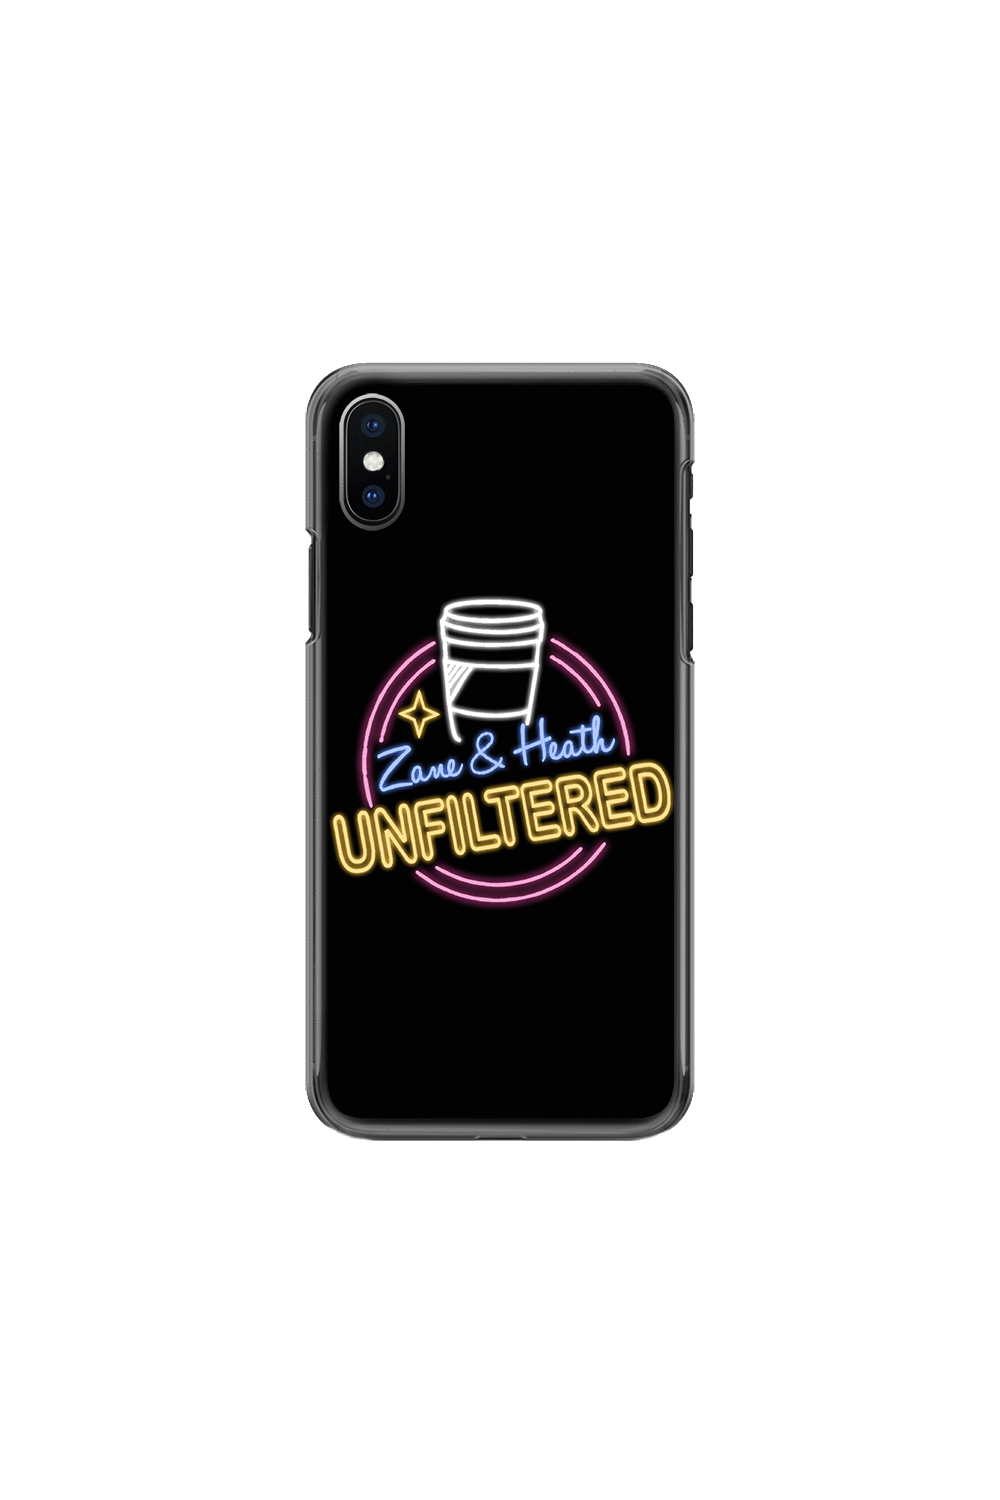 Zane and Heath Official Unfiltered Phone Case - Fanjoy